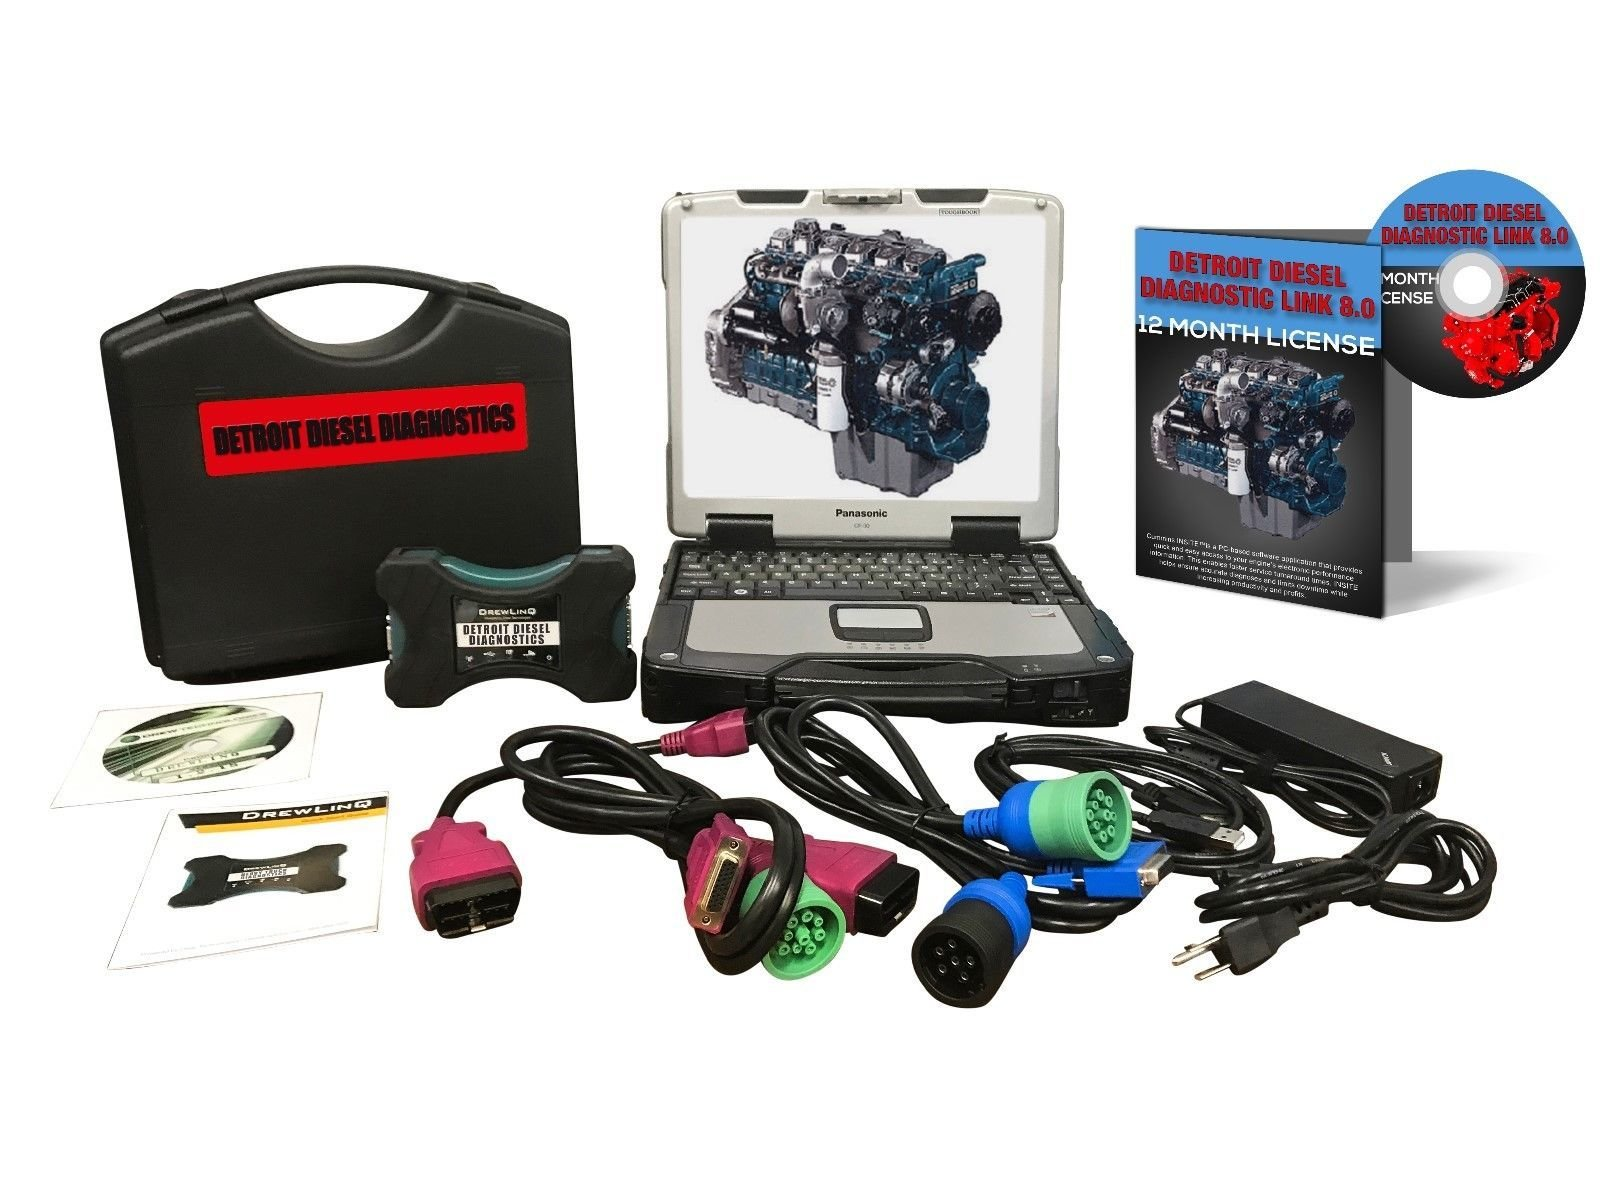 Detroit Diesel DDDL 8.0 Dealer Diagnostic Toughbook Package Nexiq 124032 00199